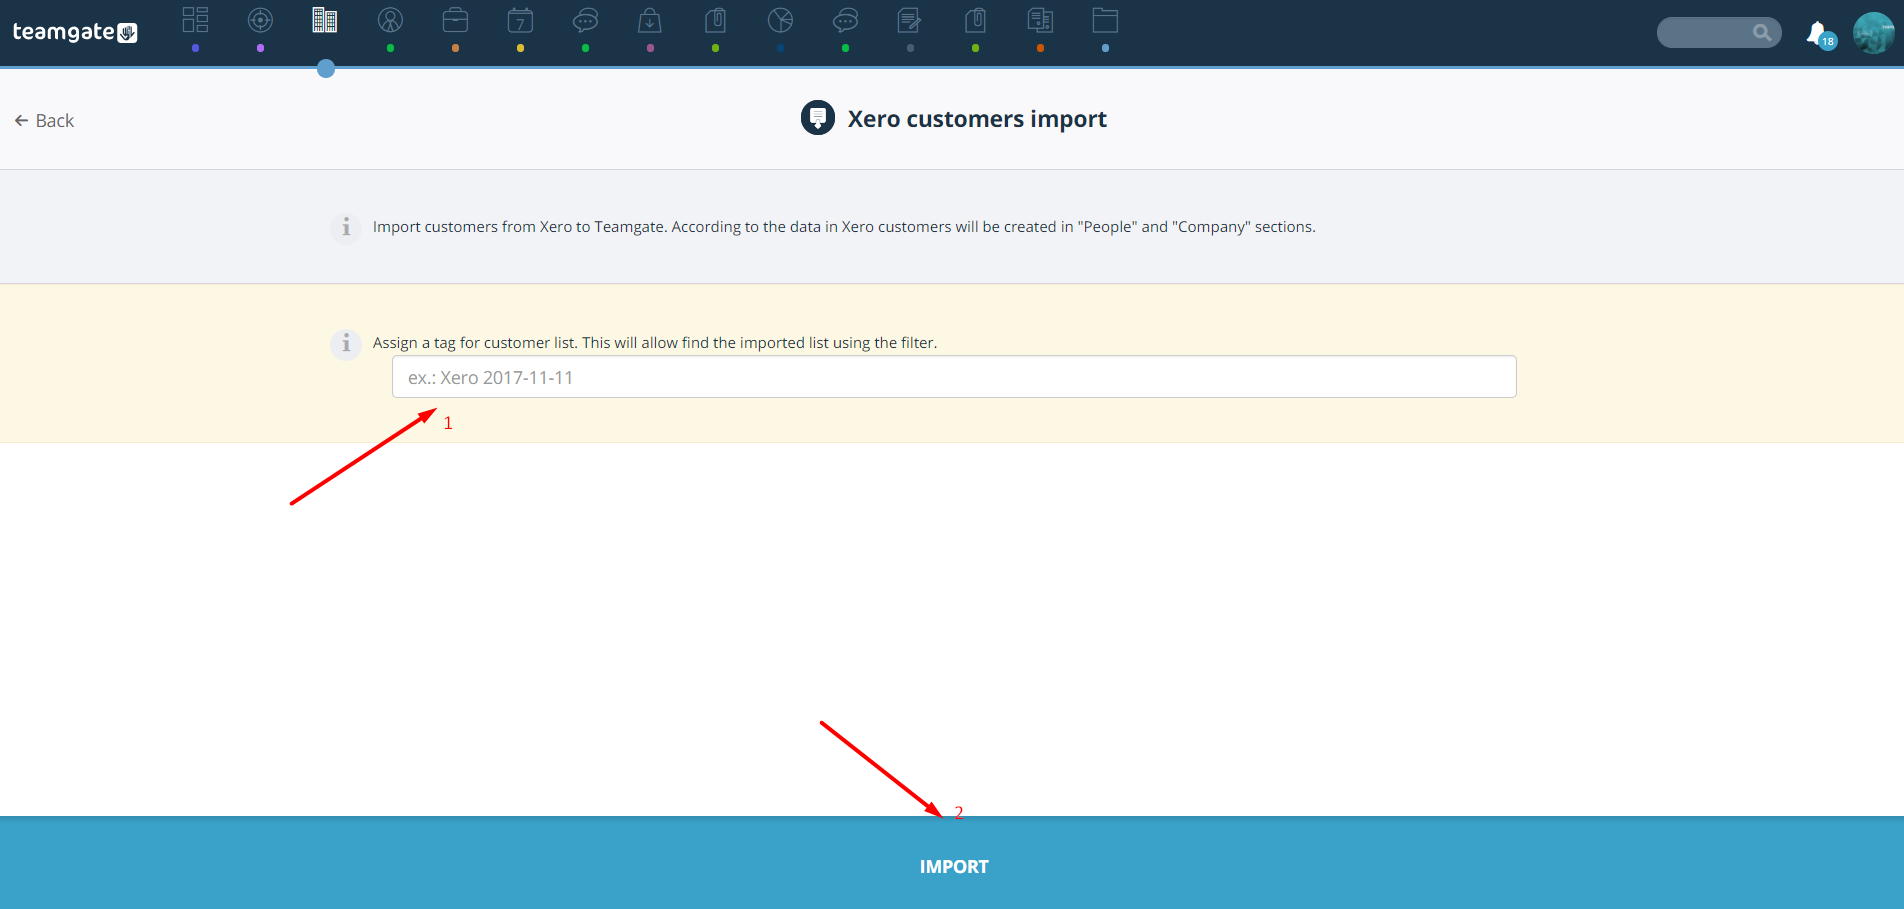 xero_customers_import-teamgate.png